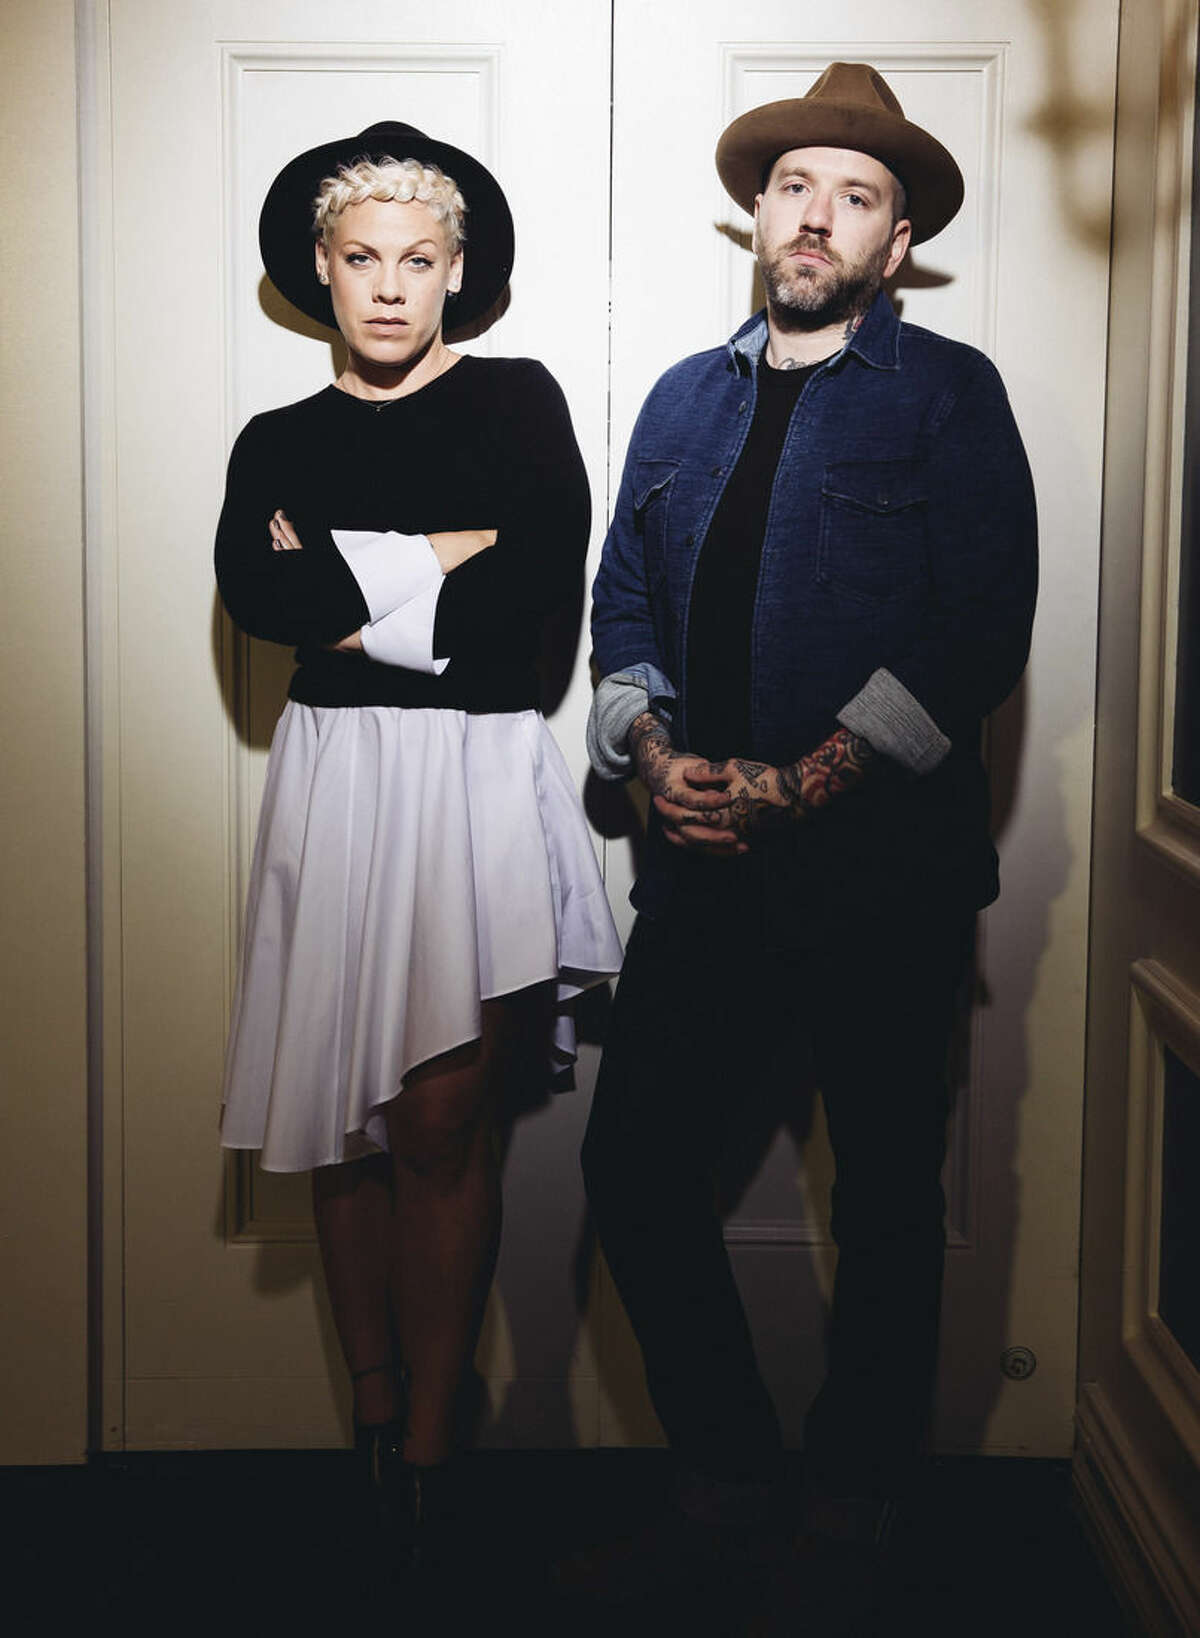 In this Friday, Oct. 10, 2014 photo, folk music duo You+Me, consisting of Alecia Moore, left, known as Pink, and Dallas Green pose for a portrait during an interview at The Viceroy Hotel in Santa Monica, Calif. The 35-year-old entertainer is just being herself in You+Me, her new acoustic project with the Canadian singer-songwriter Green. The duo releases their debut album,